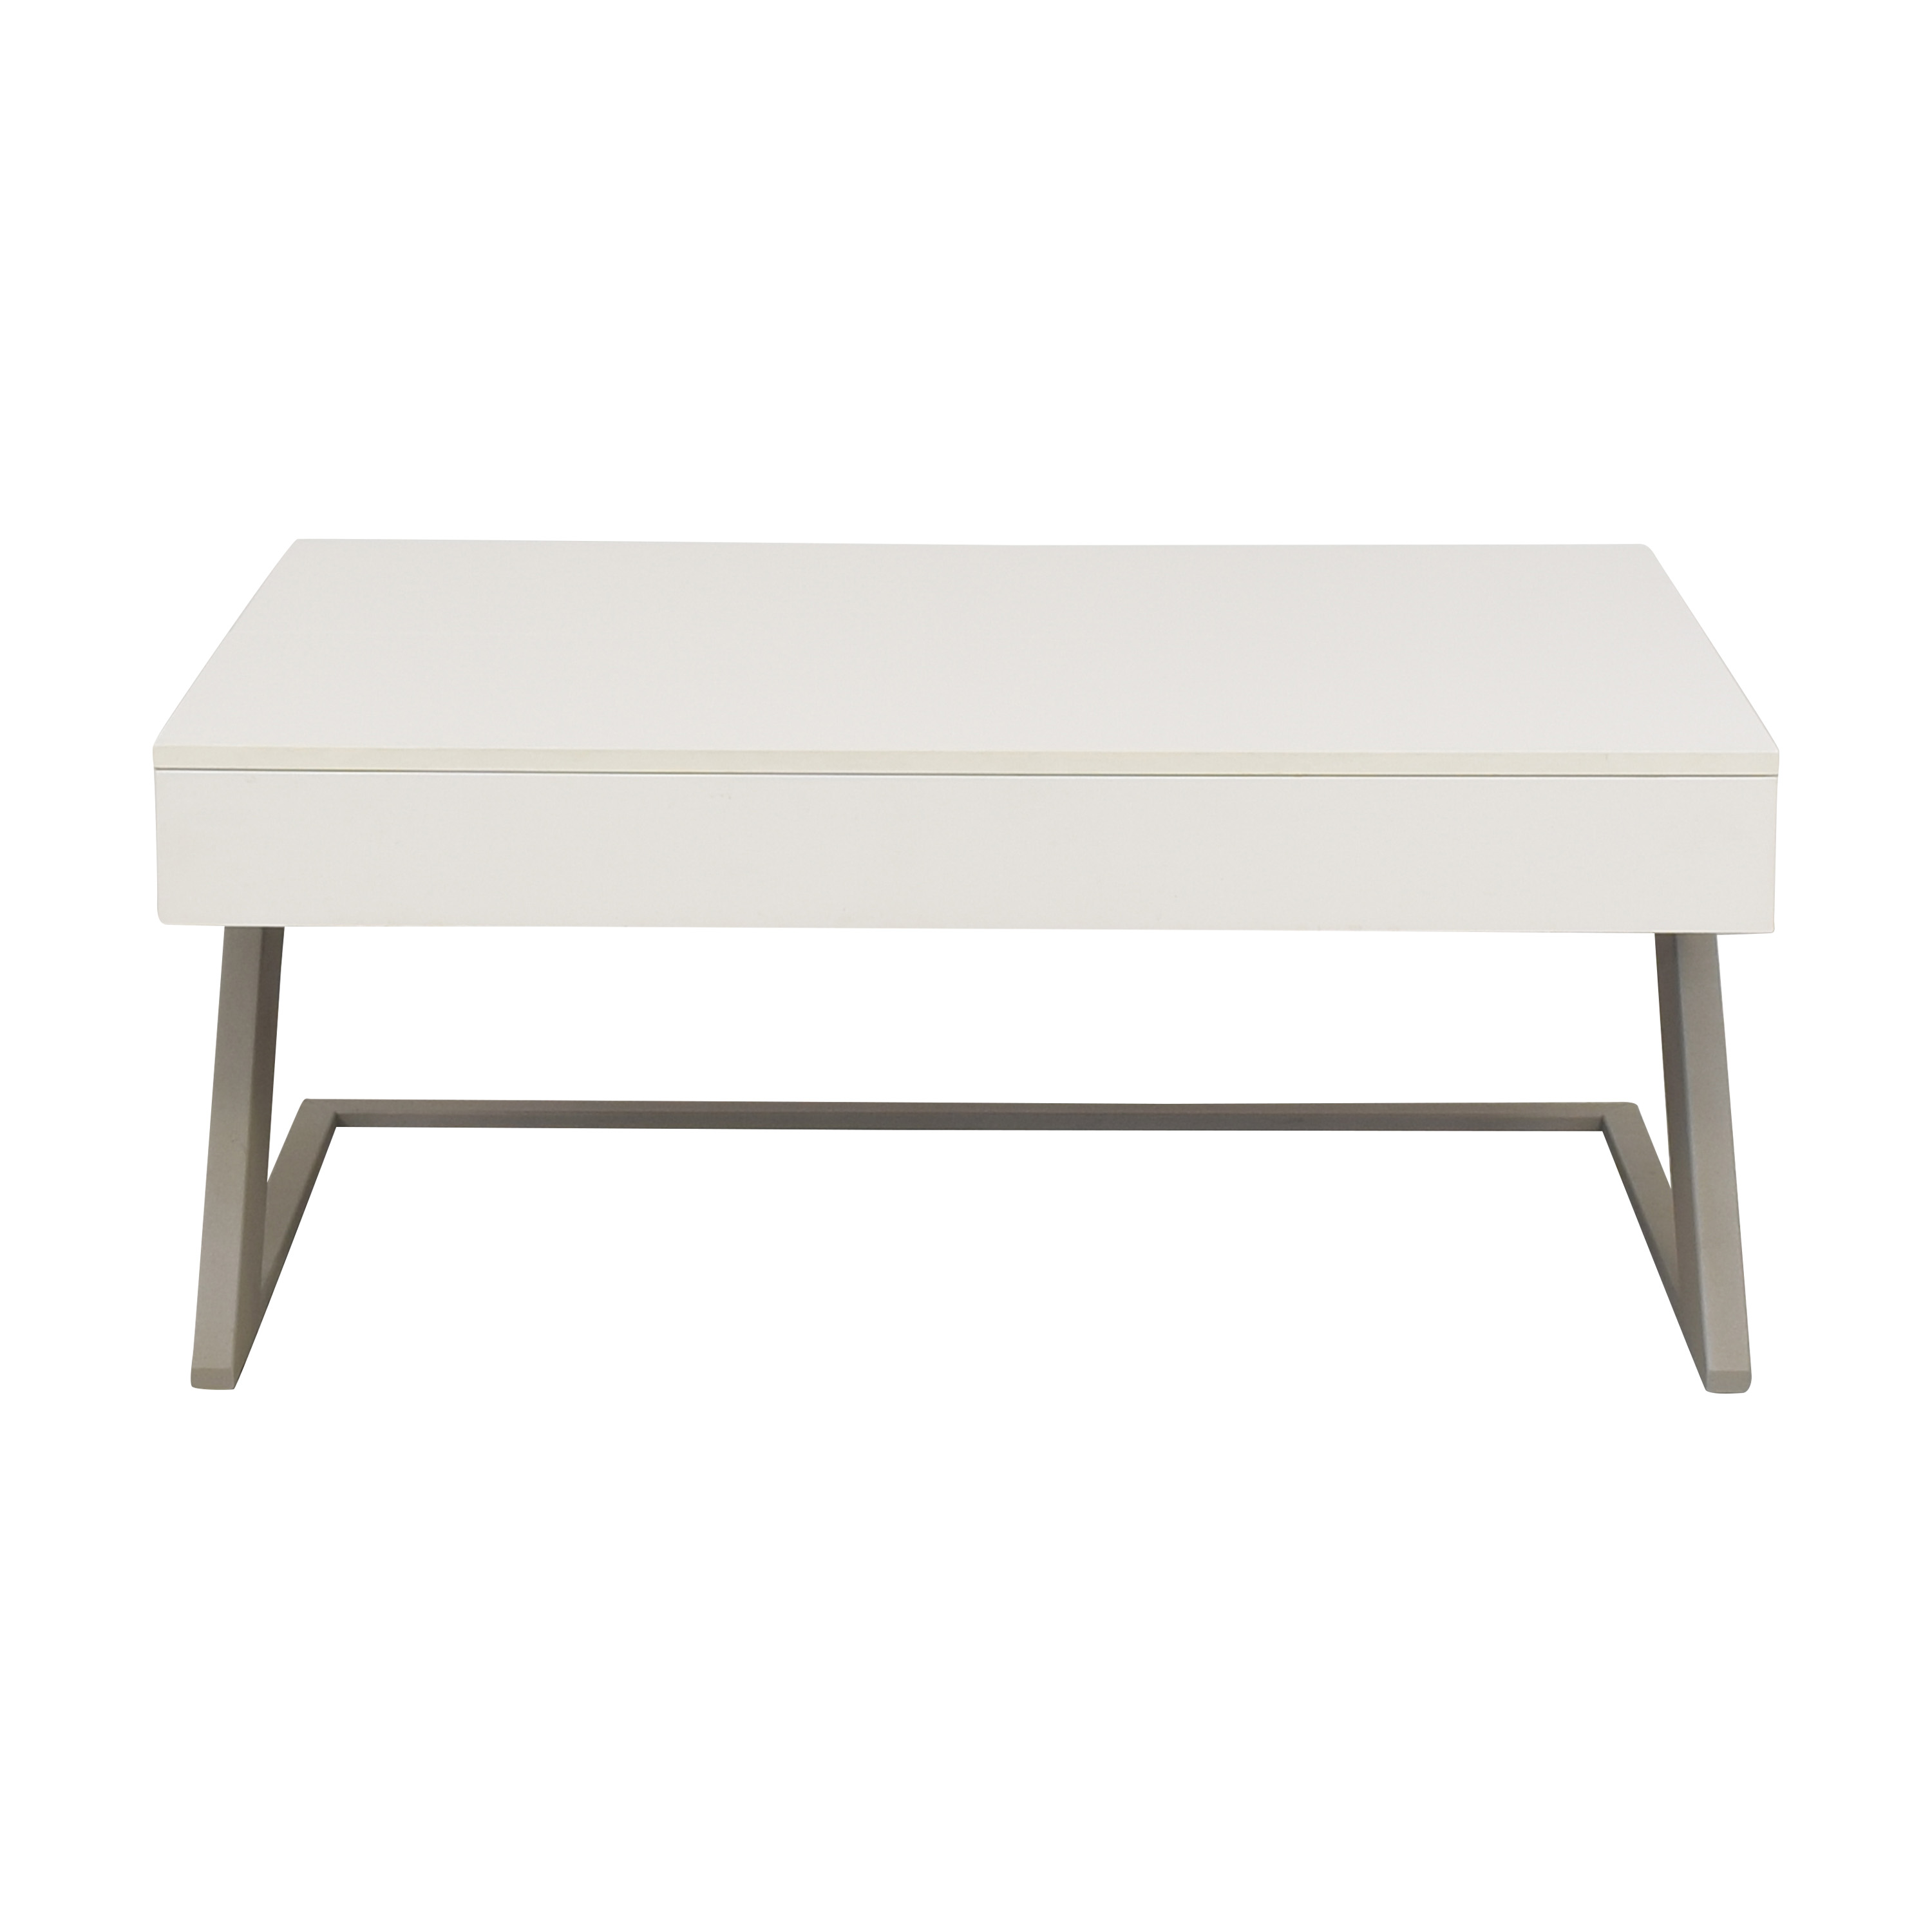 BoConcept BoConcept Granville Functional Coffee Table with Storage nyc